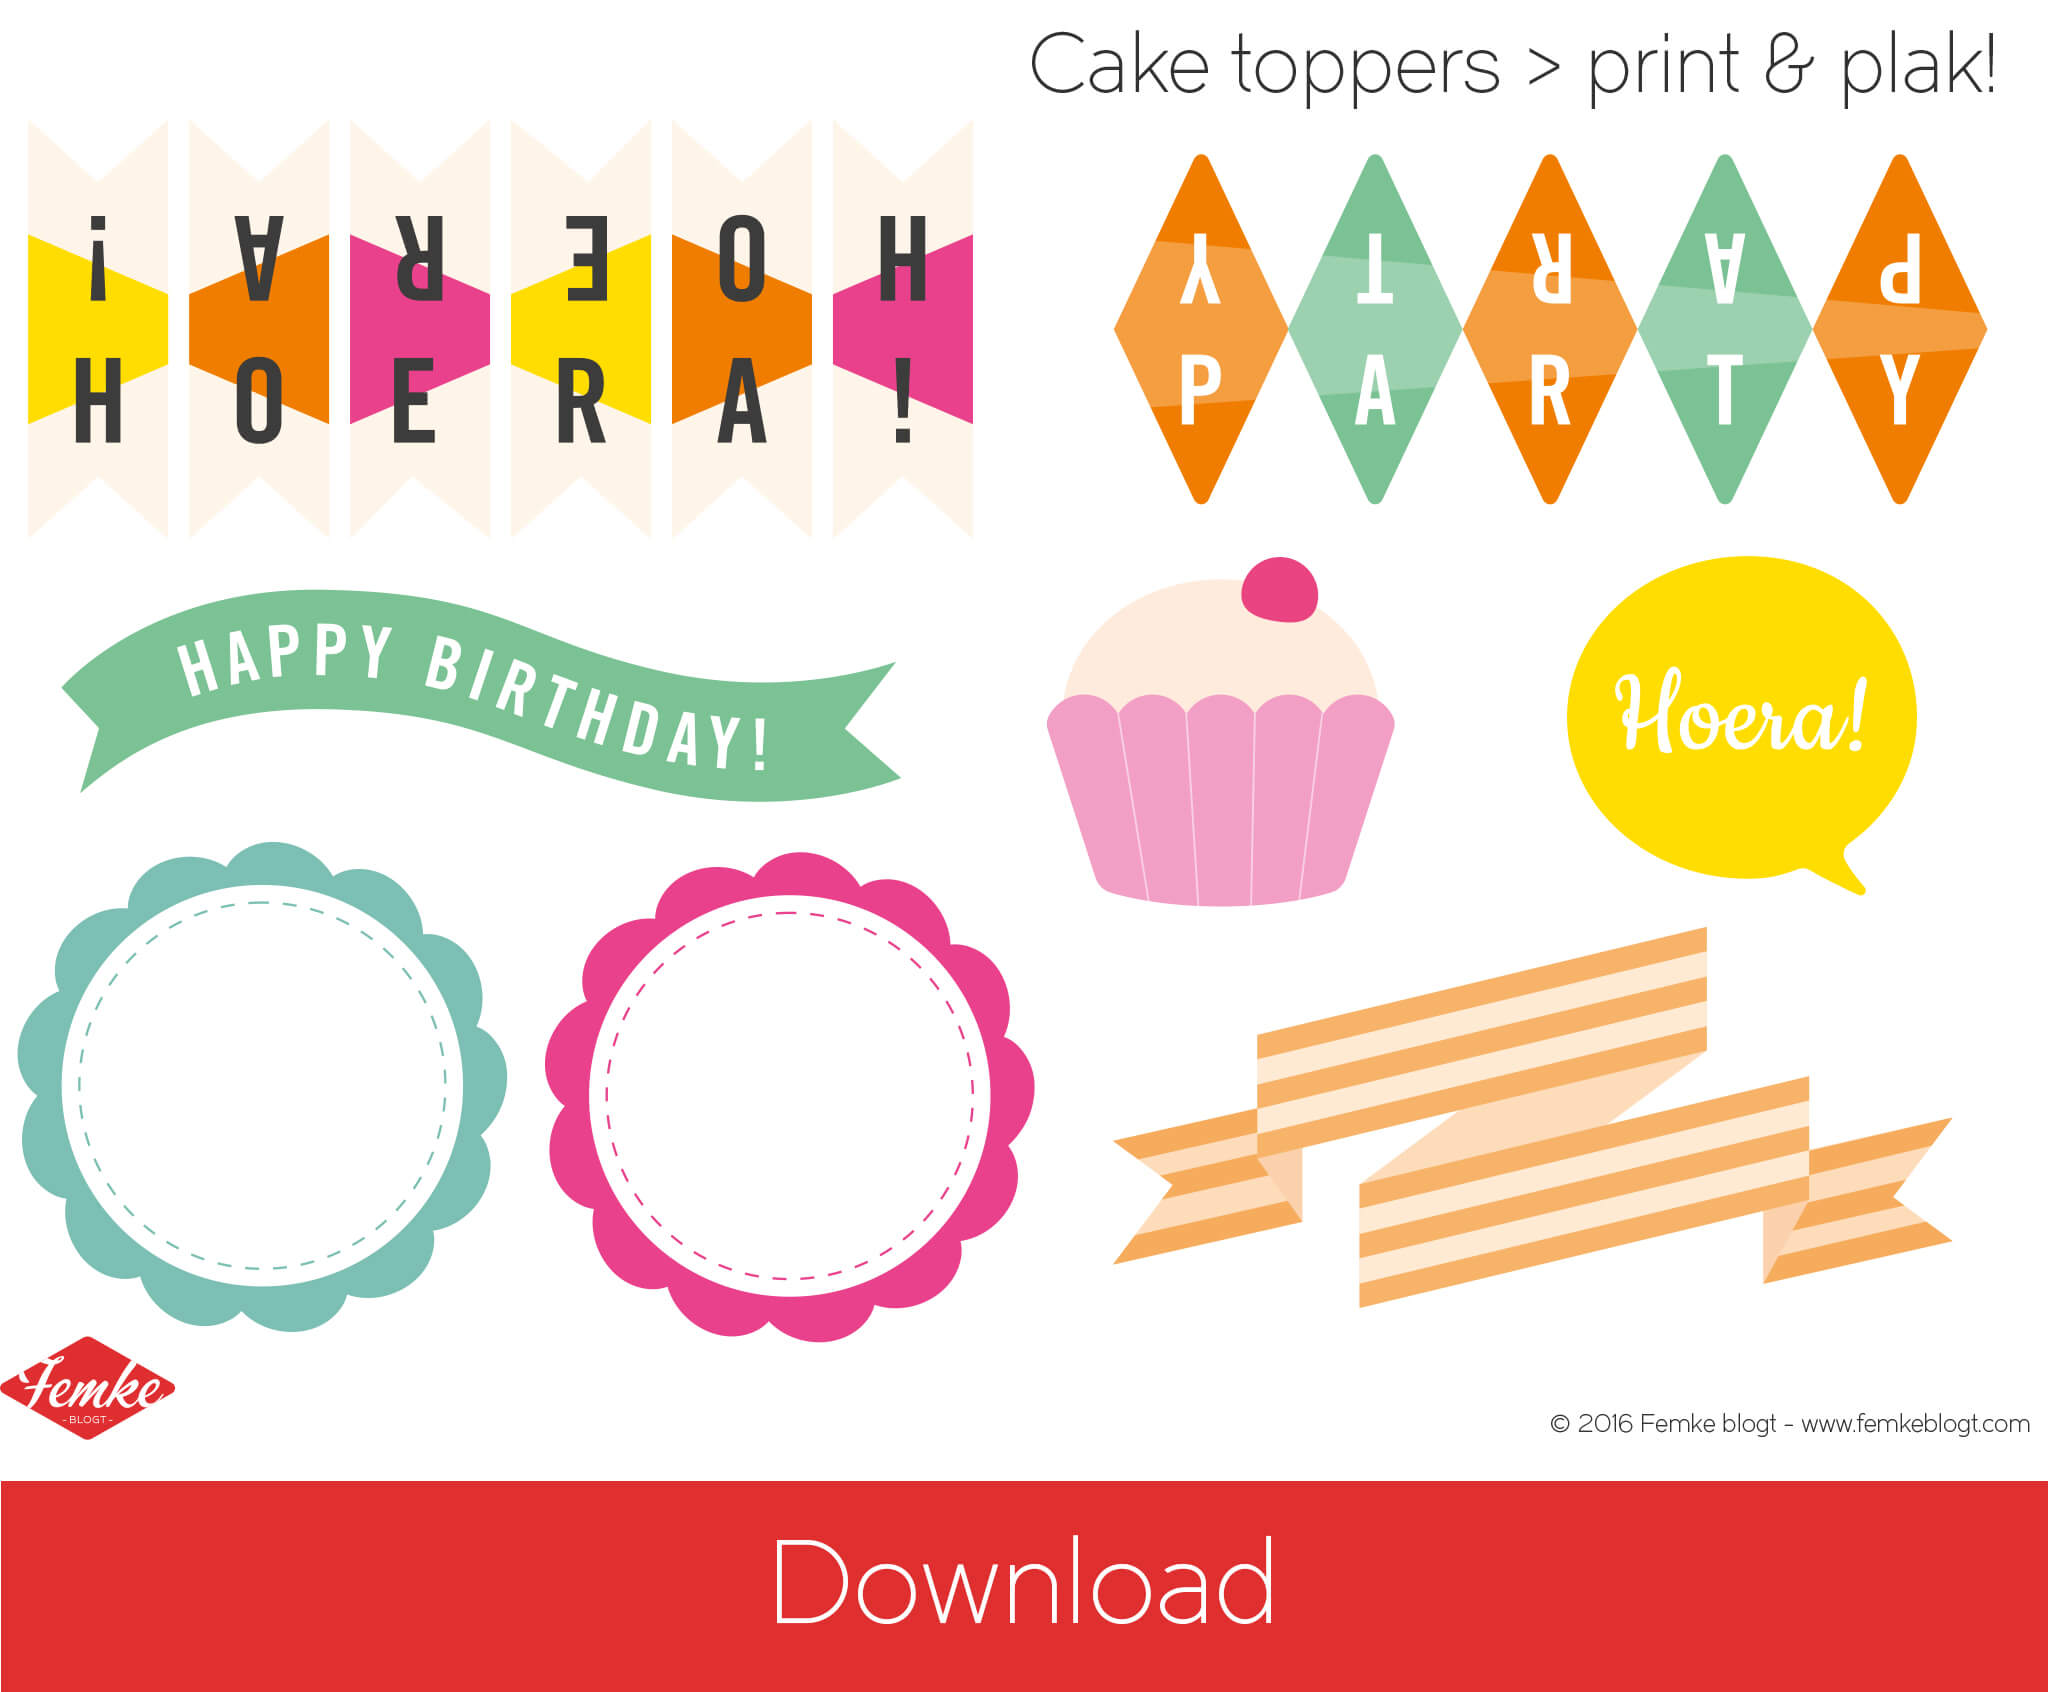 Download printable DIY cake toppers